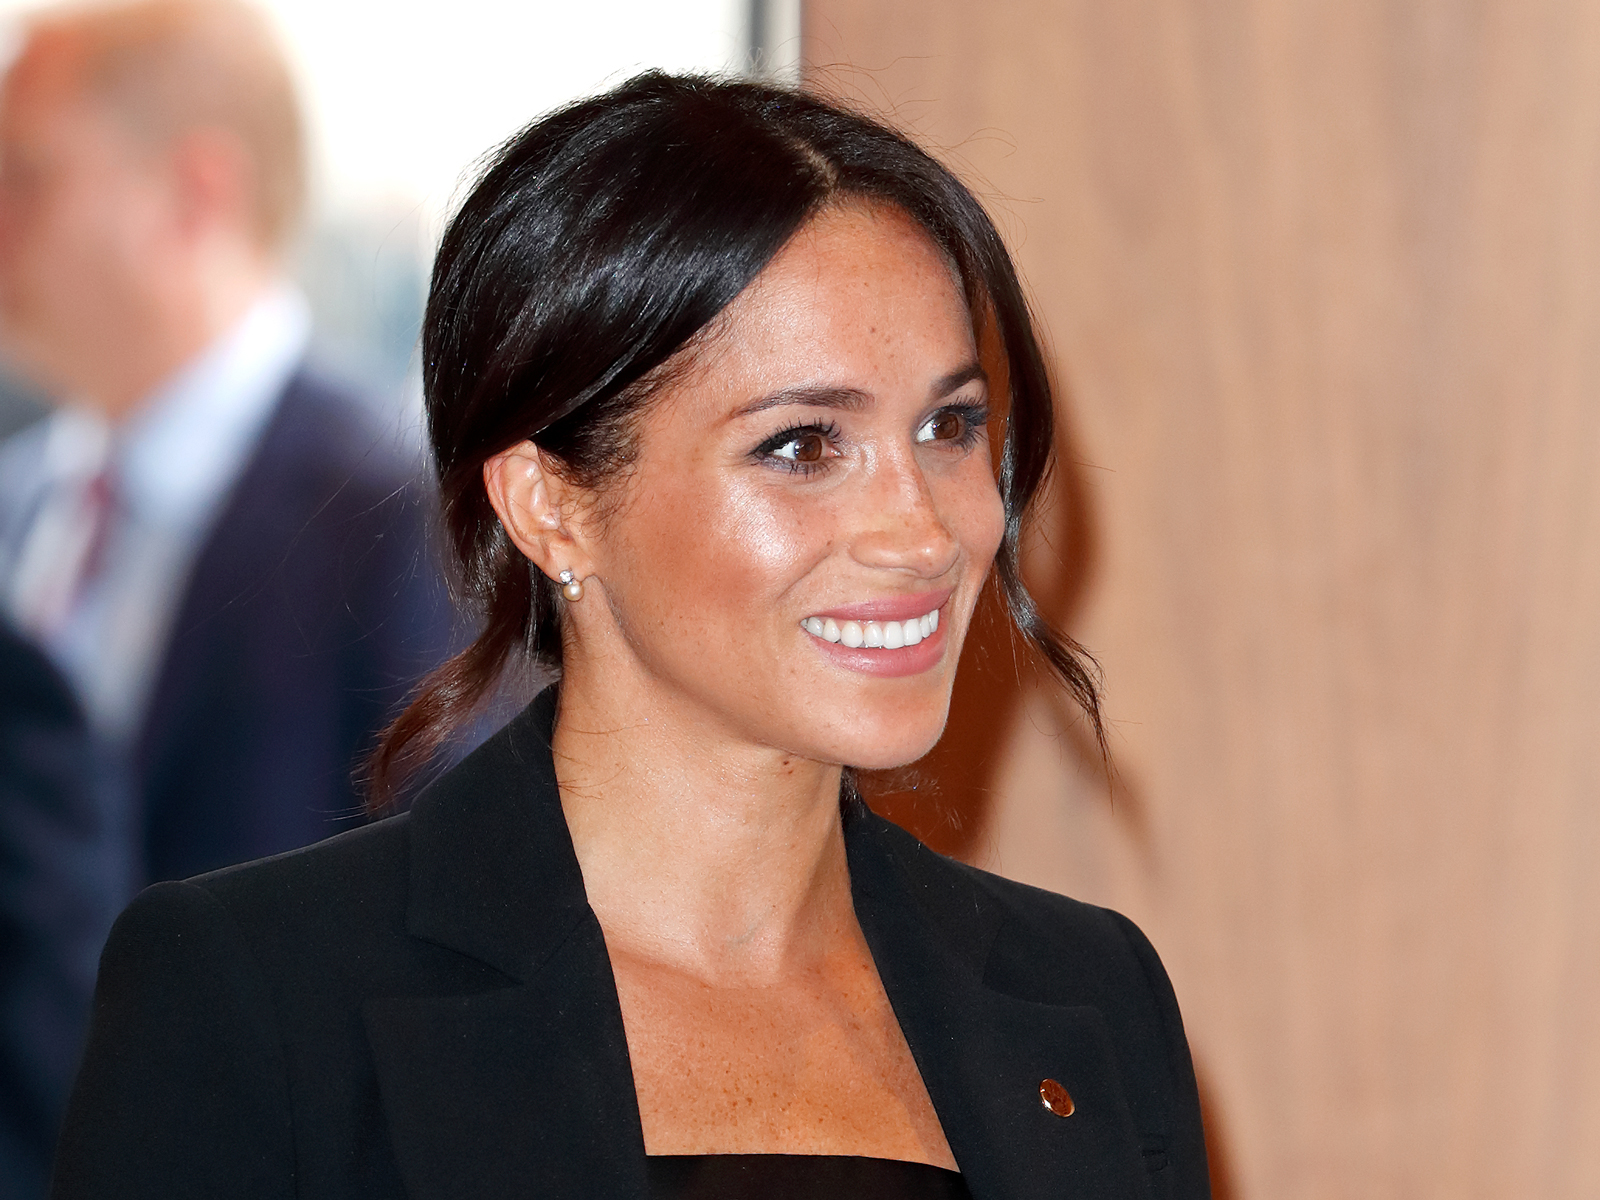 Meghan Markle, Duchess of Sussex, Put Her Name on This Cookbook for a Great Cause